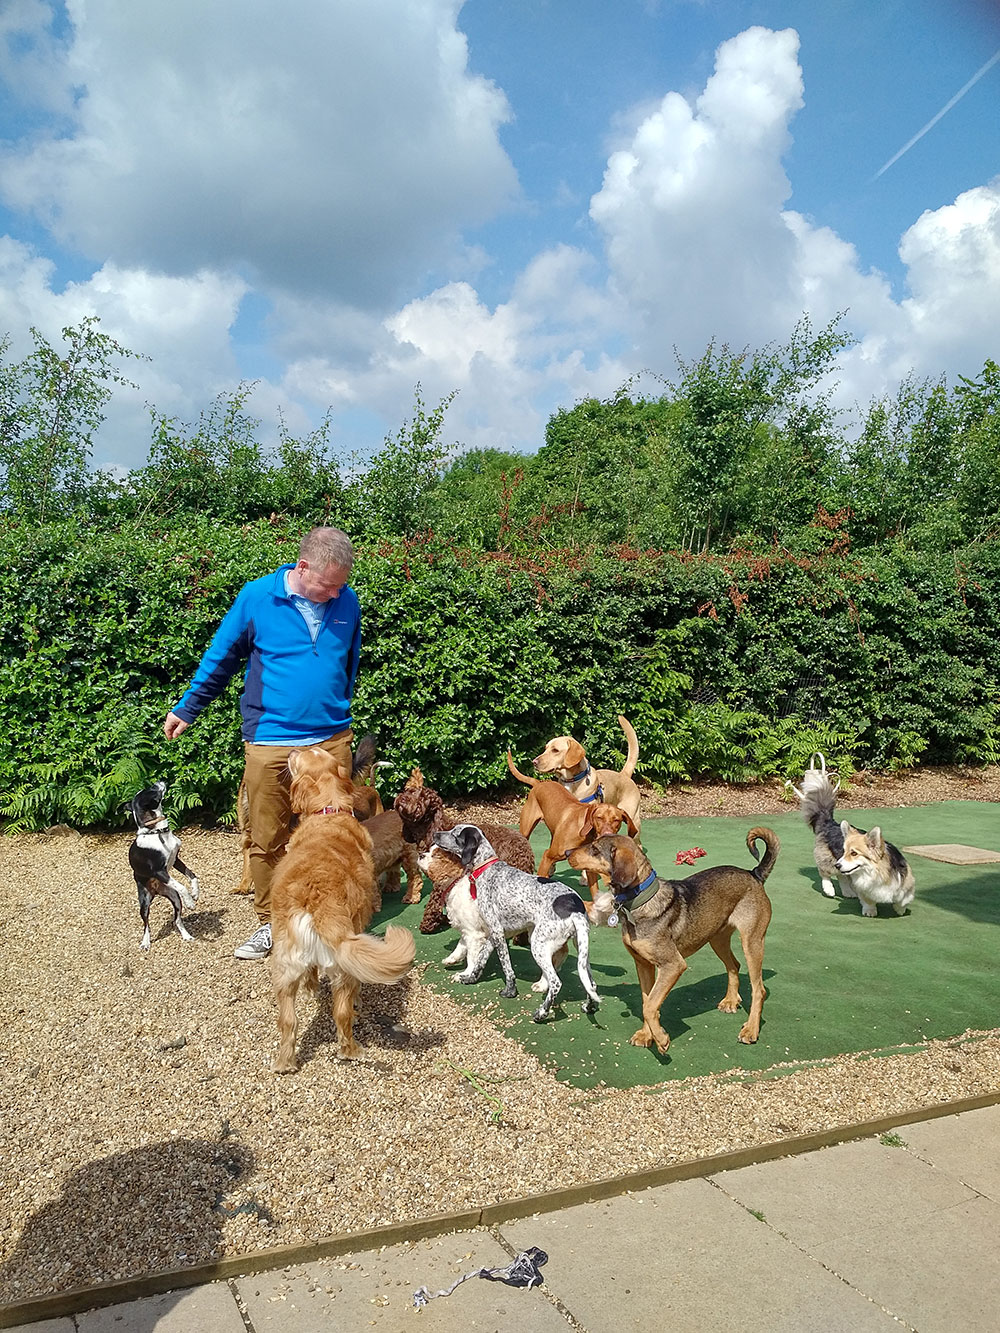 Courier Richard caught up with the dogs as they were having a good runaround